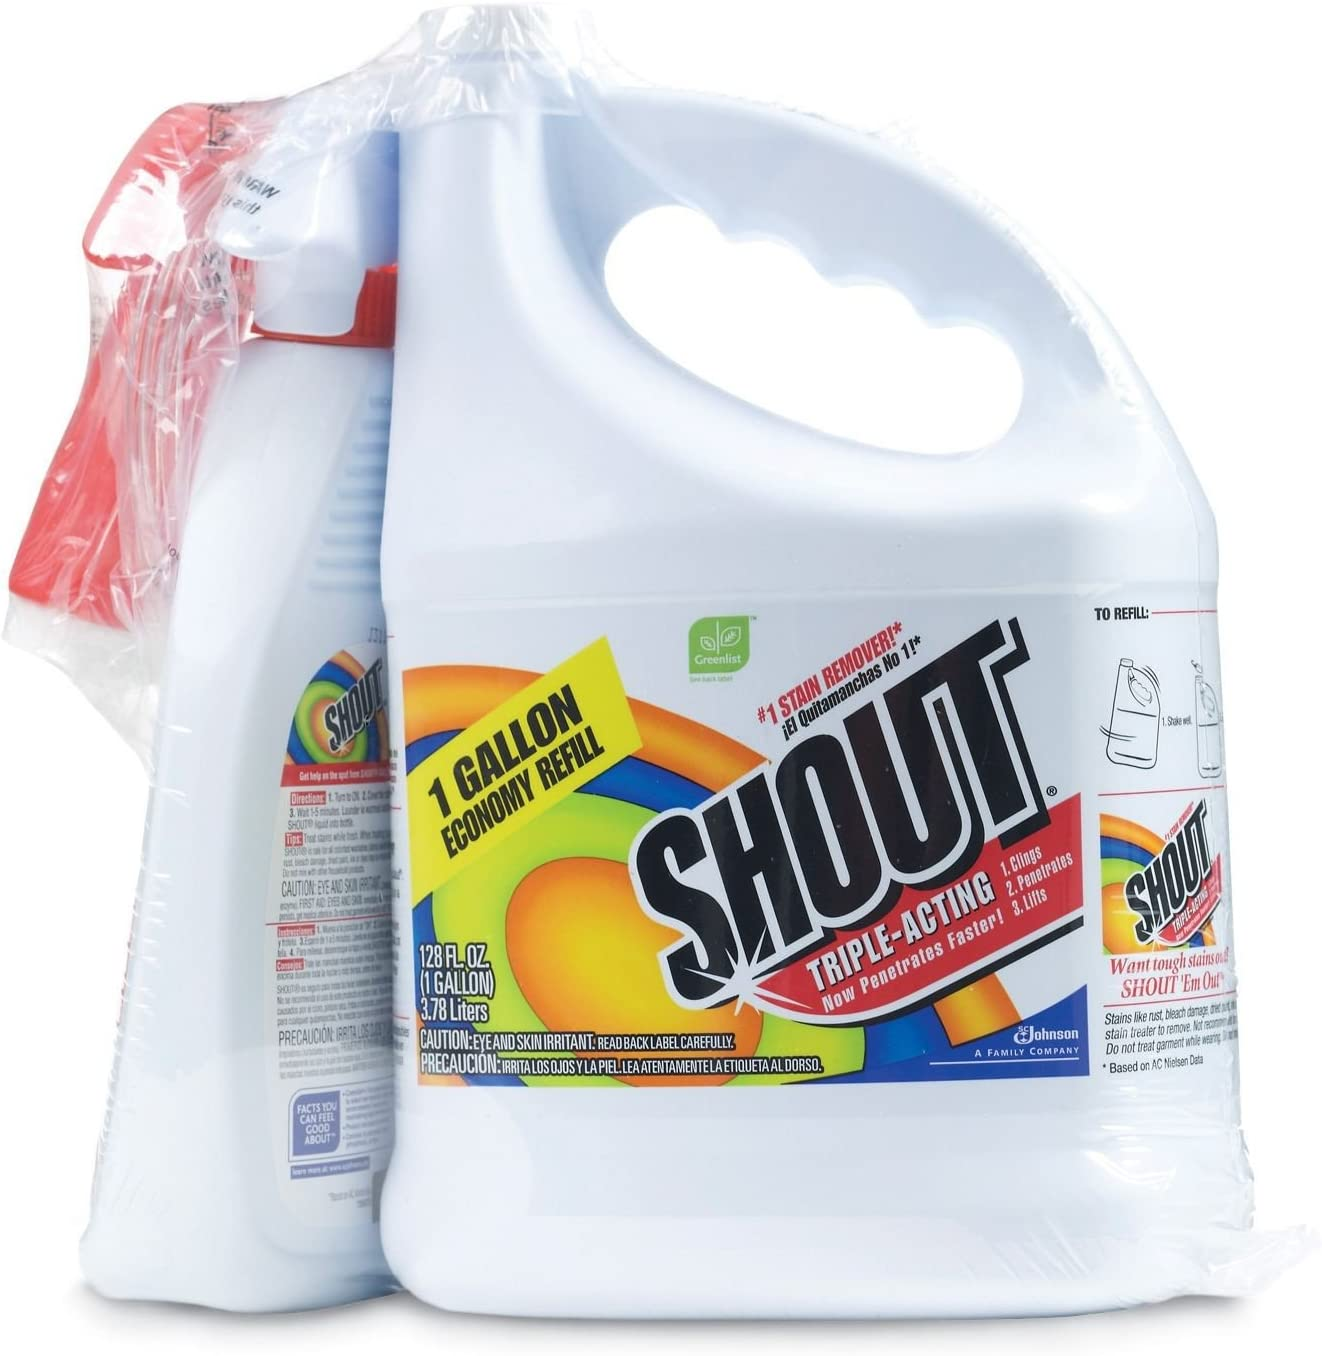 Shout Stain Remover with Extendable Trigger Hose (128oz + 22 oz.)